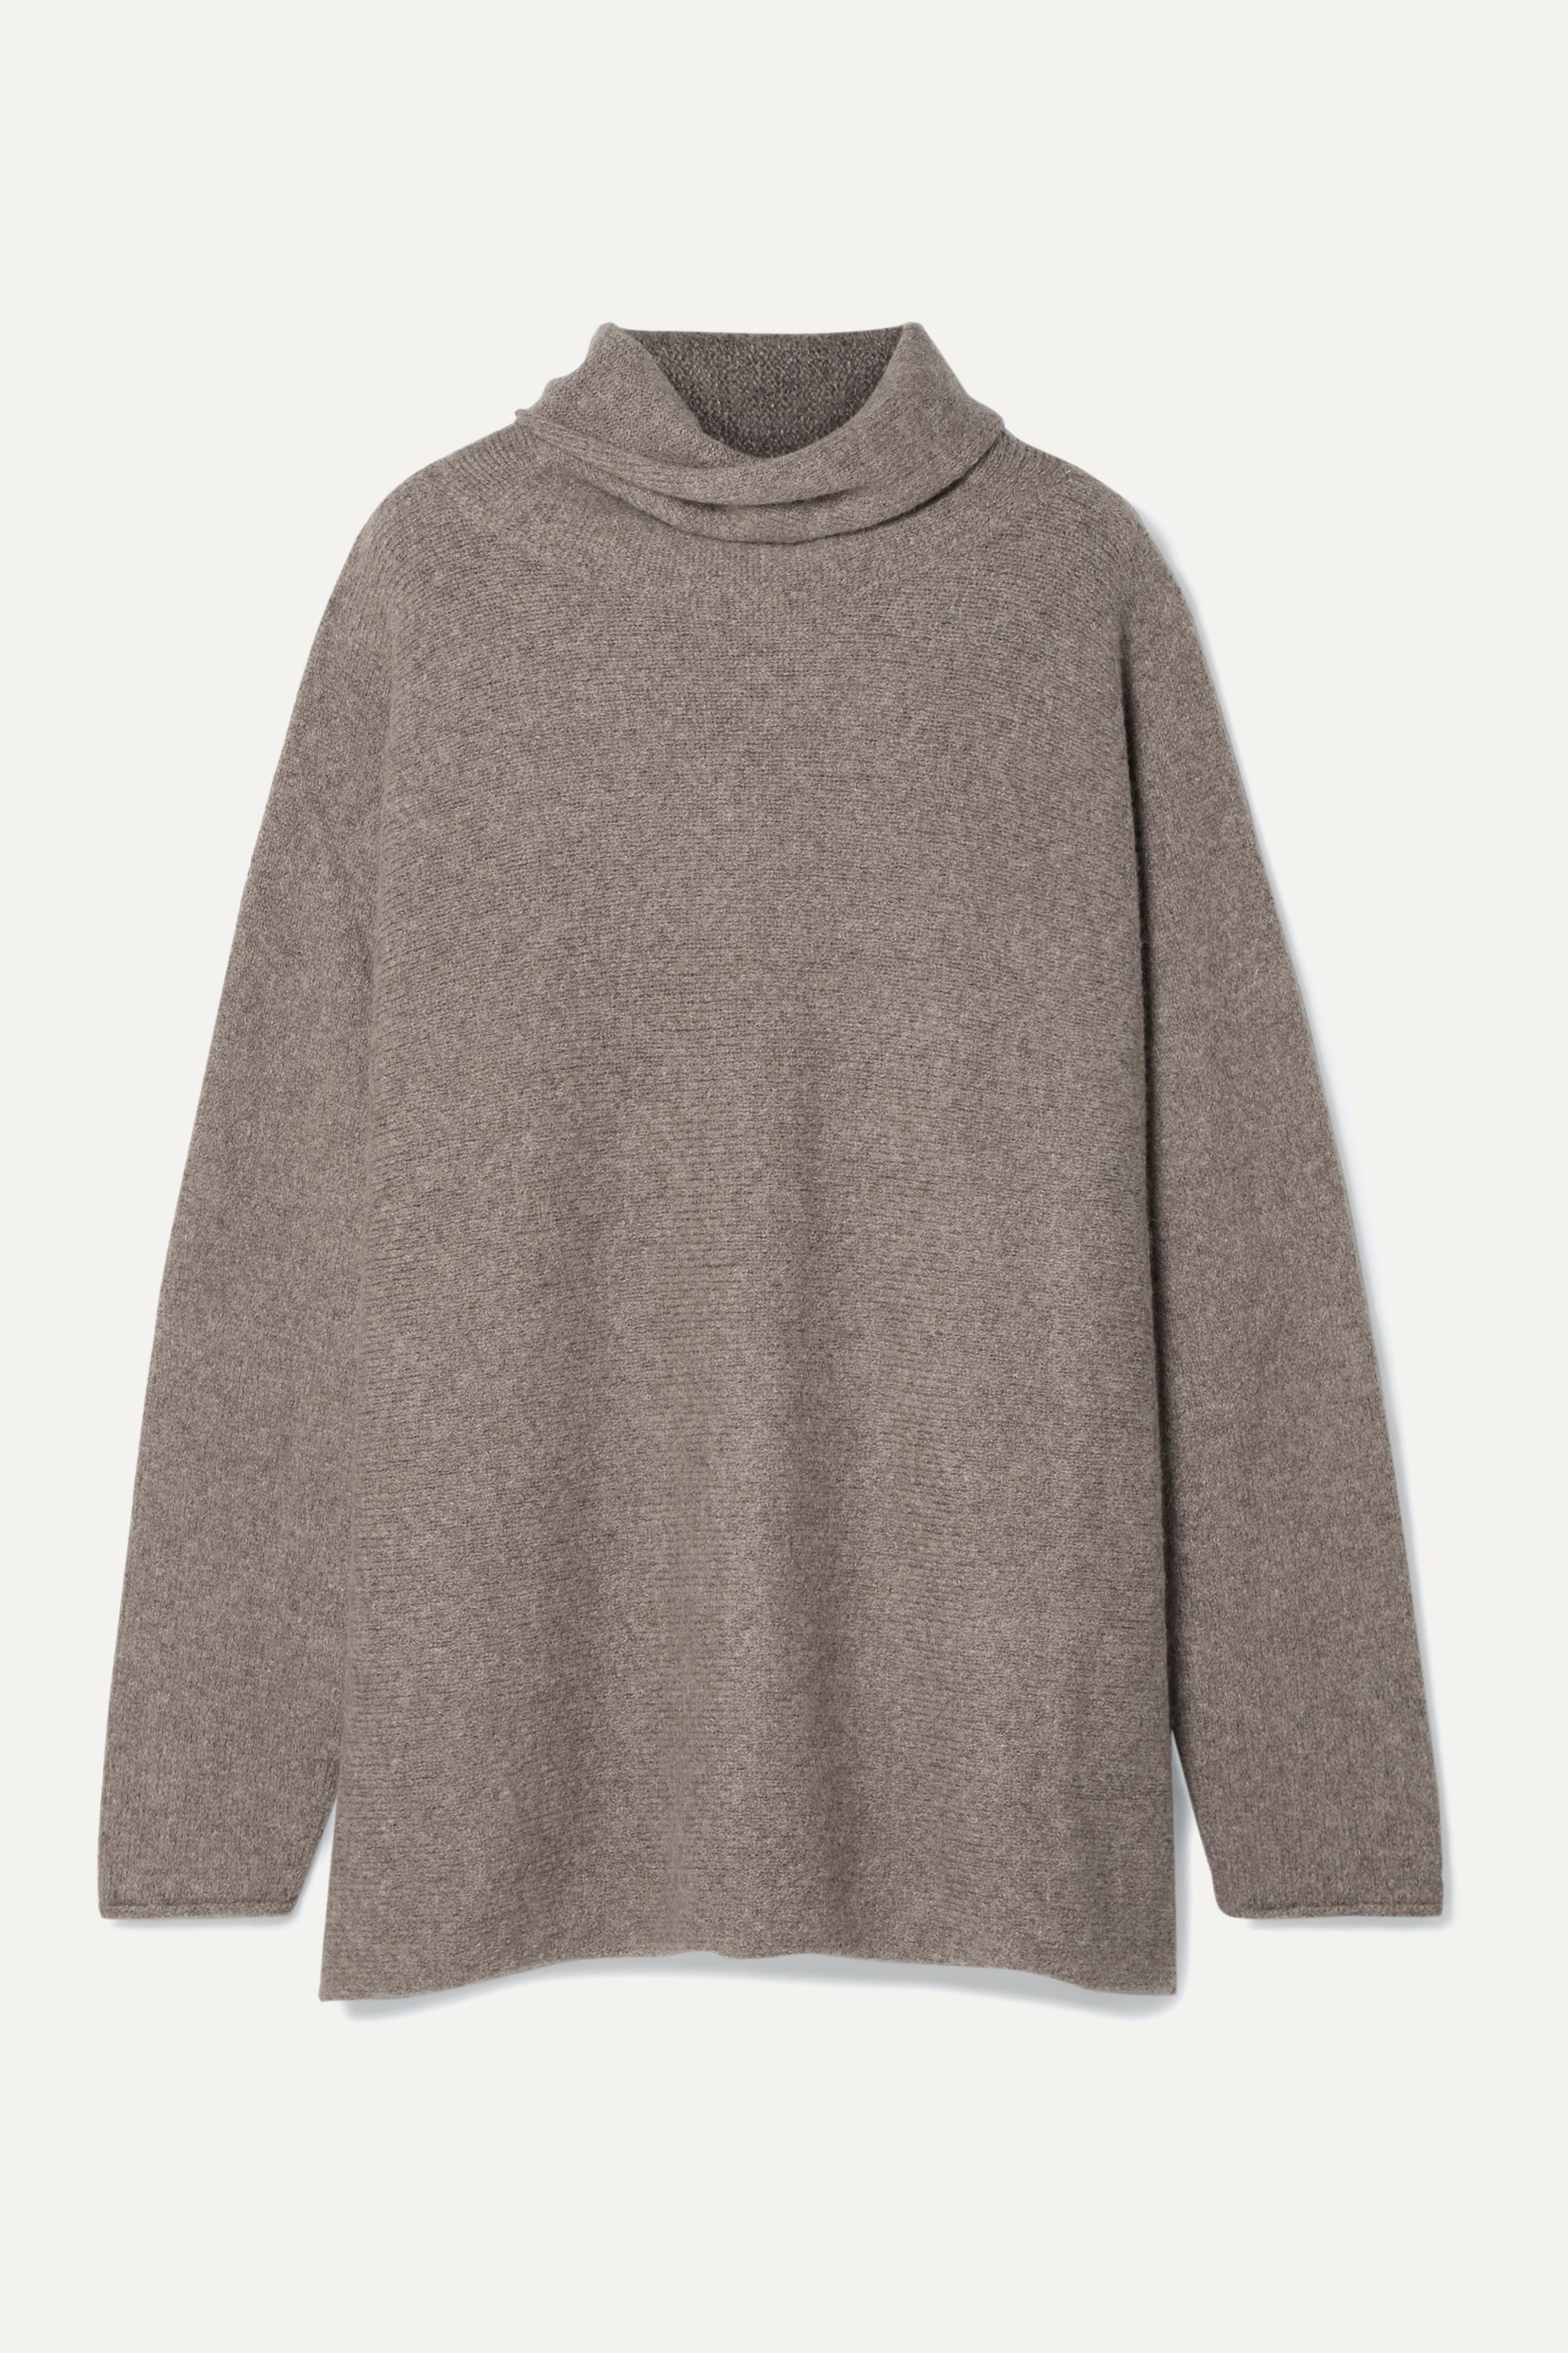 Lauren Manoogian Alpaca turtleneck sweater